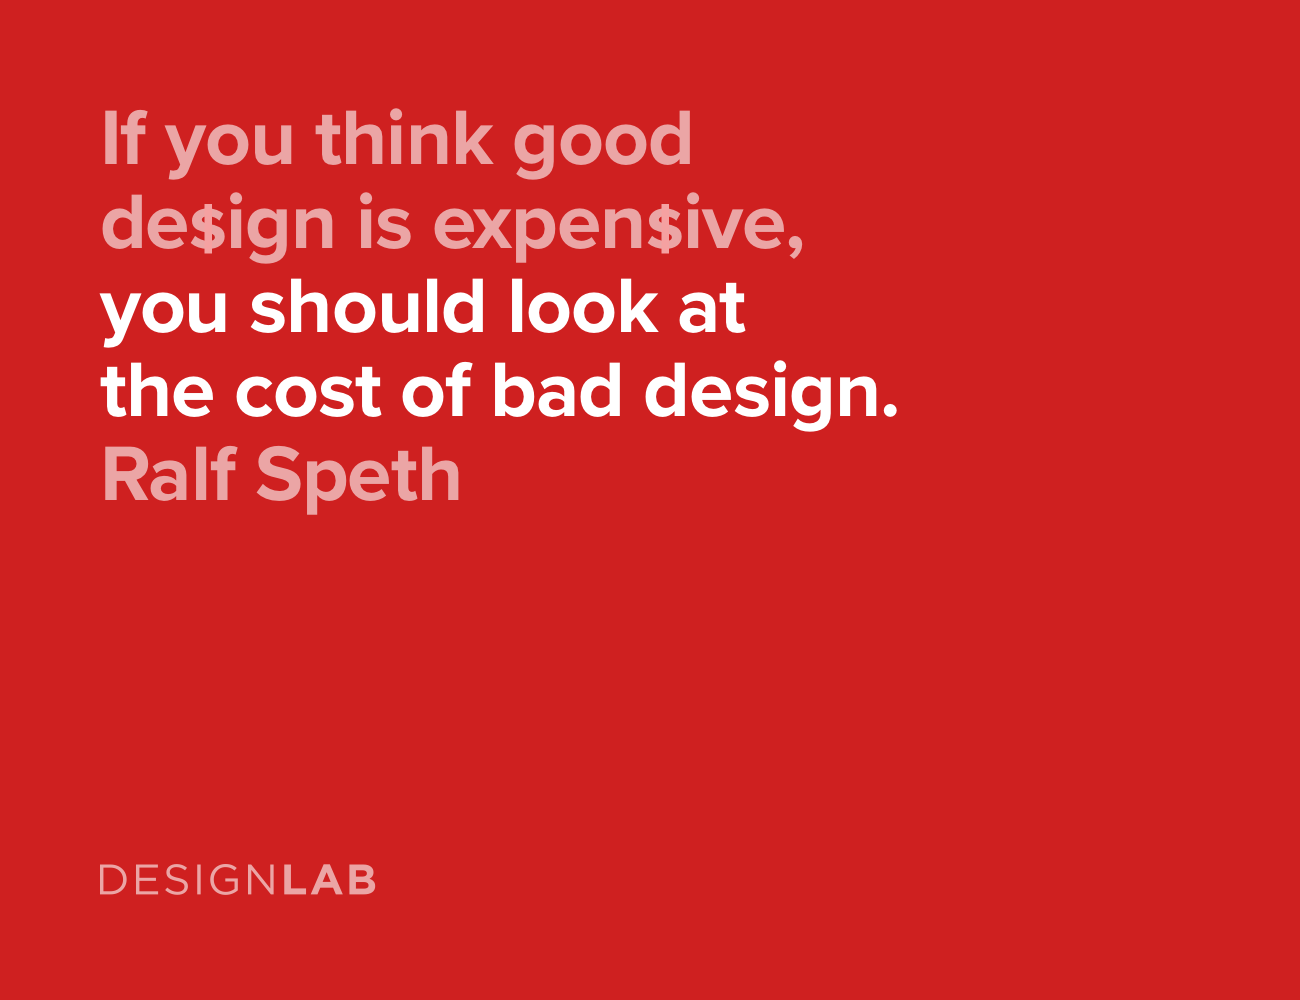 If you think good design is expensive, you should look at the cost of bad design. Ralf Speth